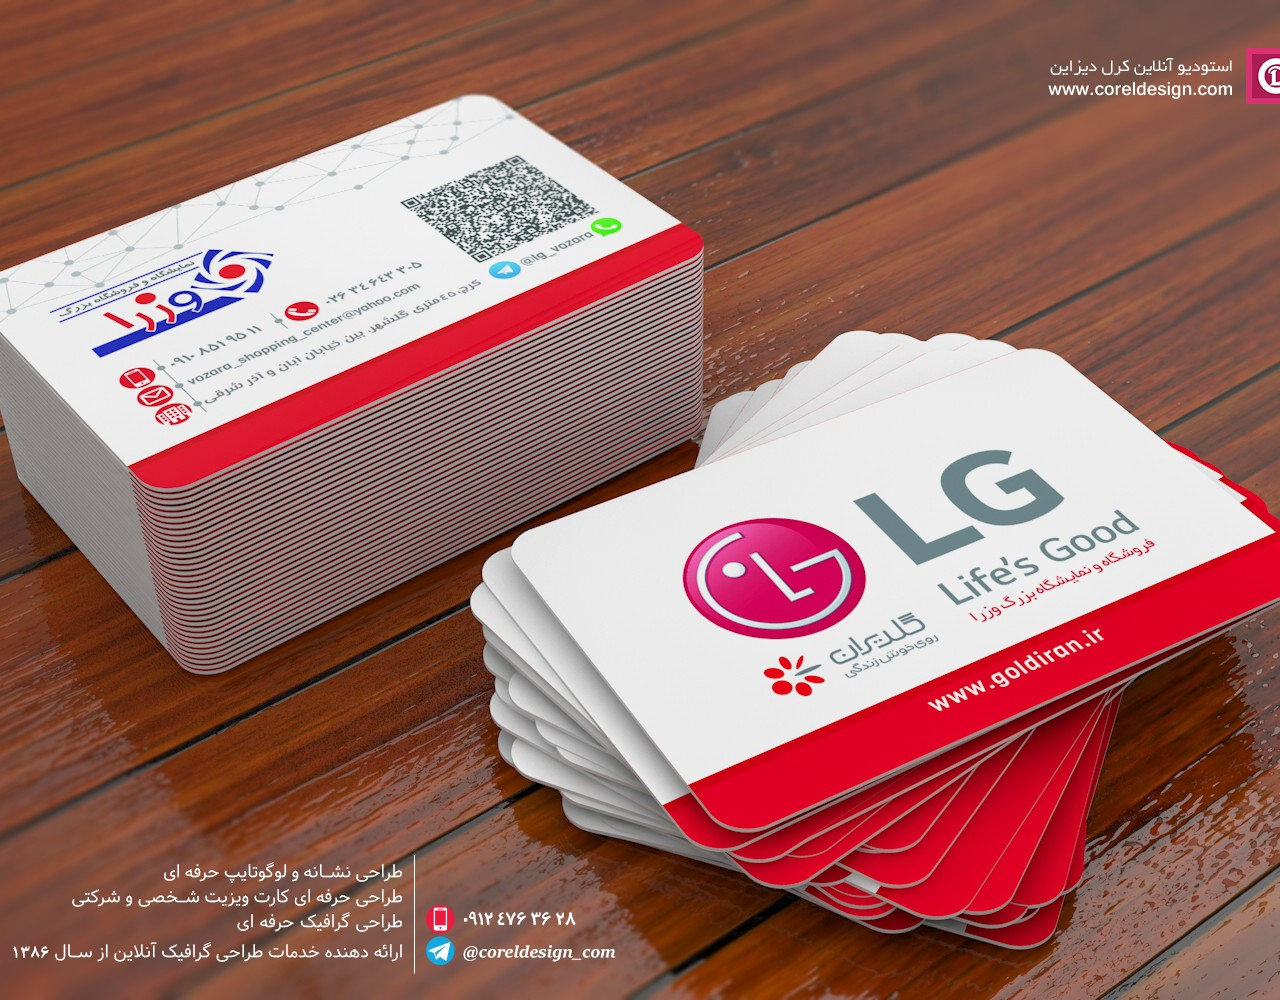 LG_BusinesCard2